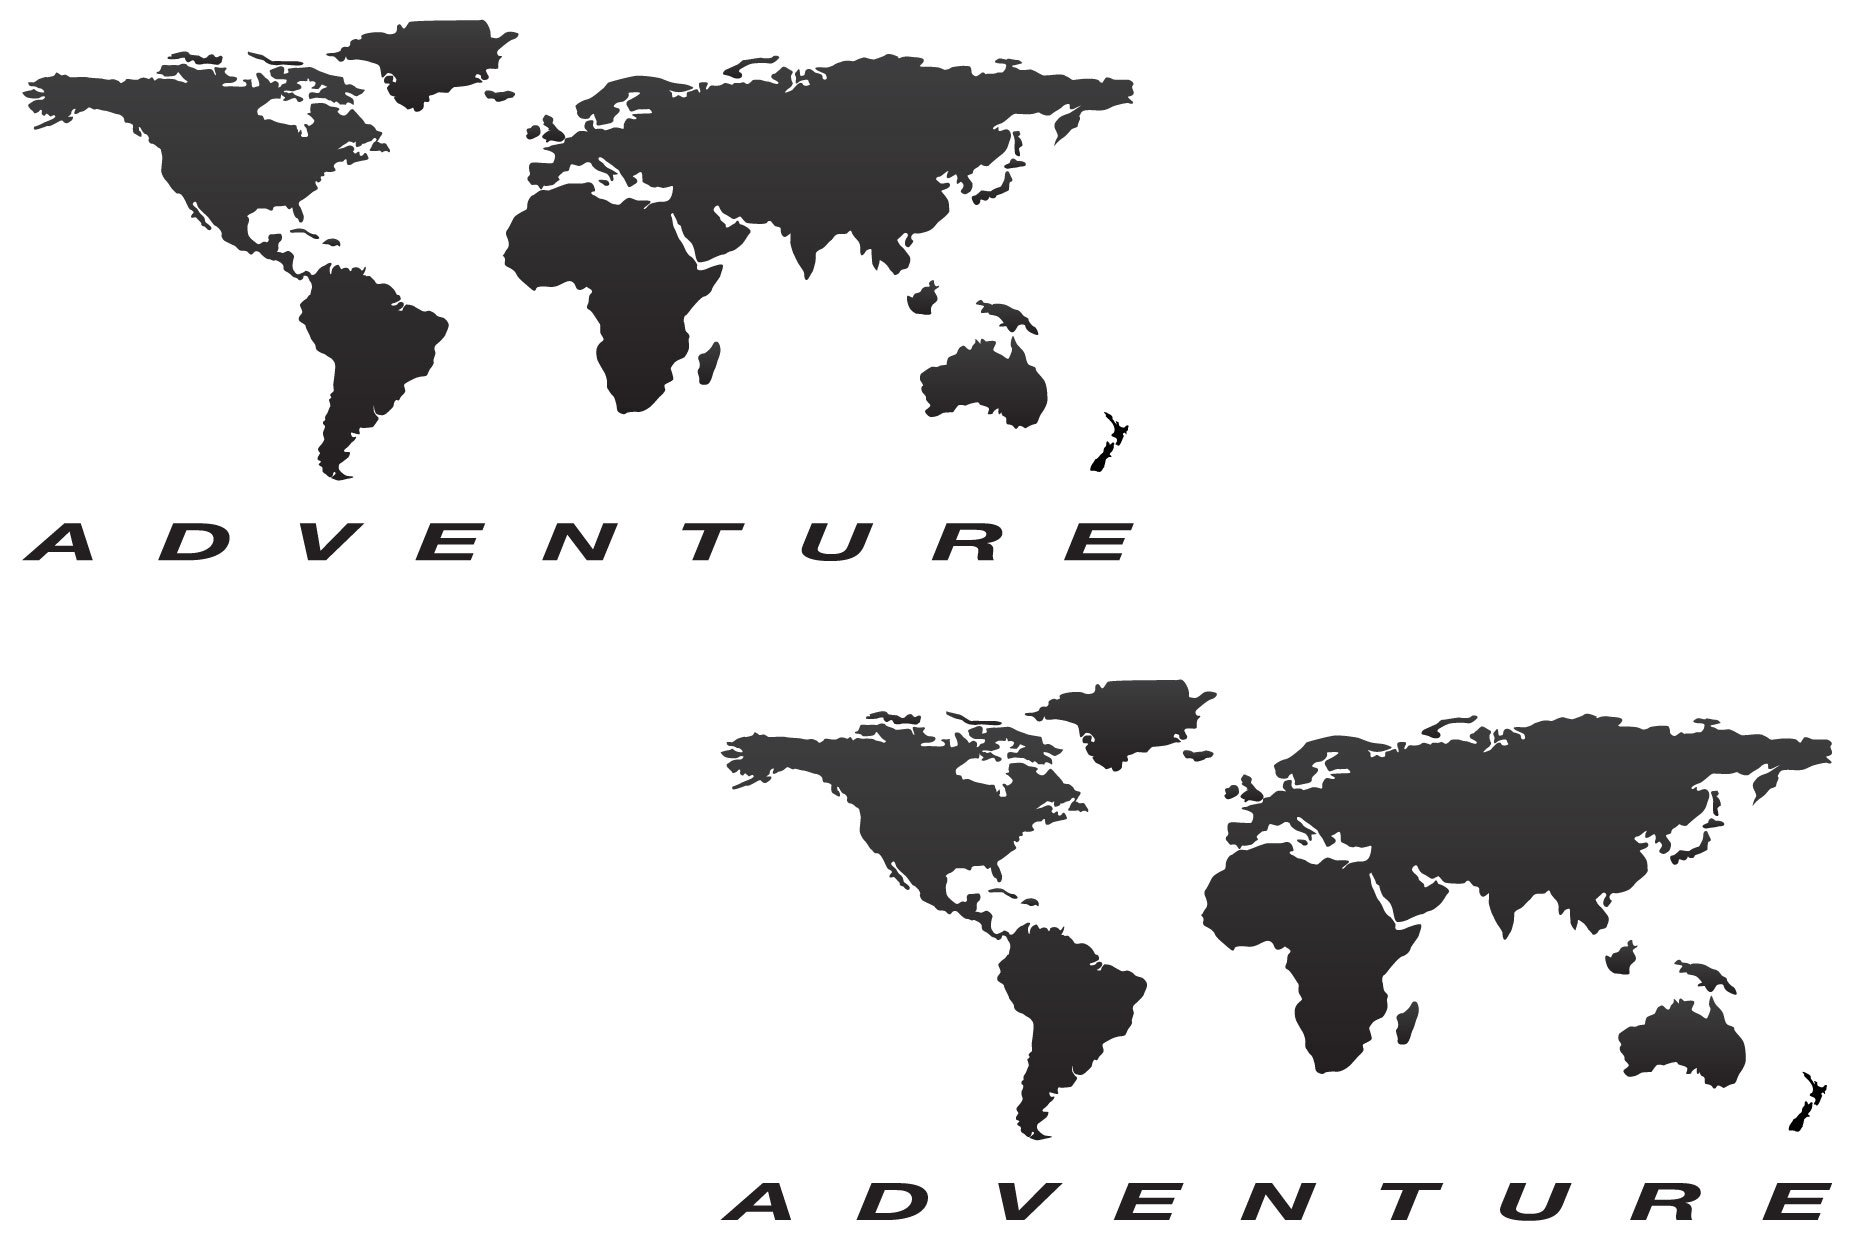 The Pixel Hut gs000026b Adventure Motorcycle Reflective Decal Kit ''World Adventure Map'' for Touratech Panniers - Black